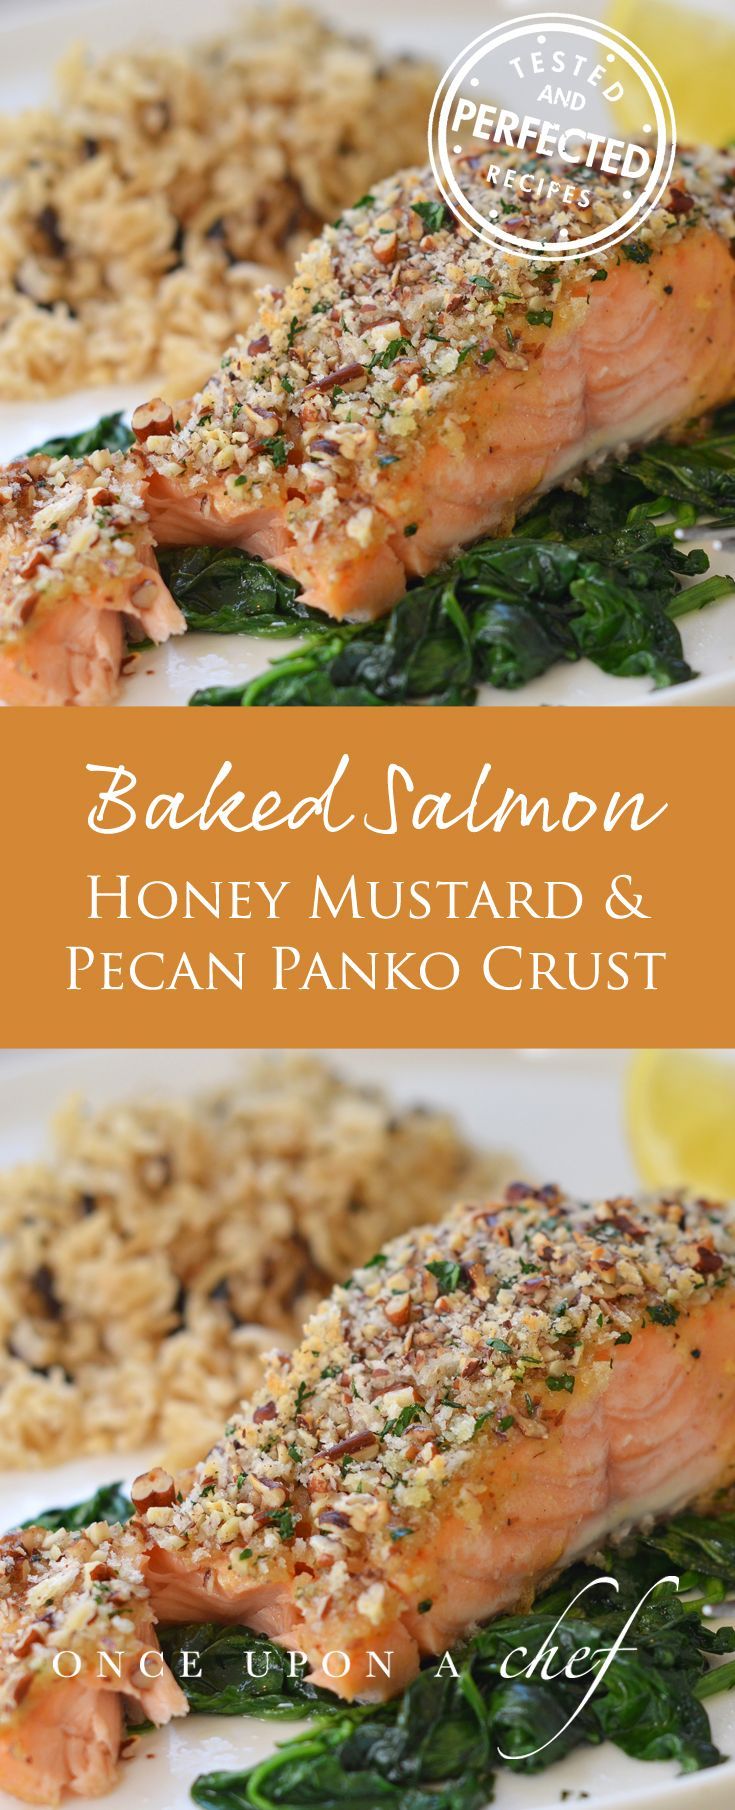 Baked Salmon with Honey Mustard and Pecan-Panko Crust - Once Upon a Chef